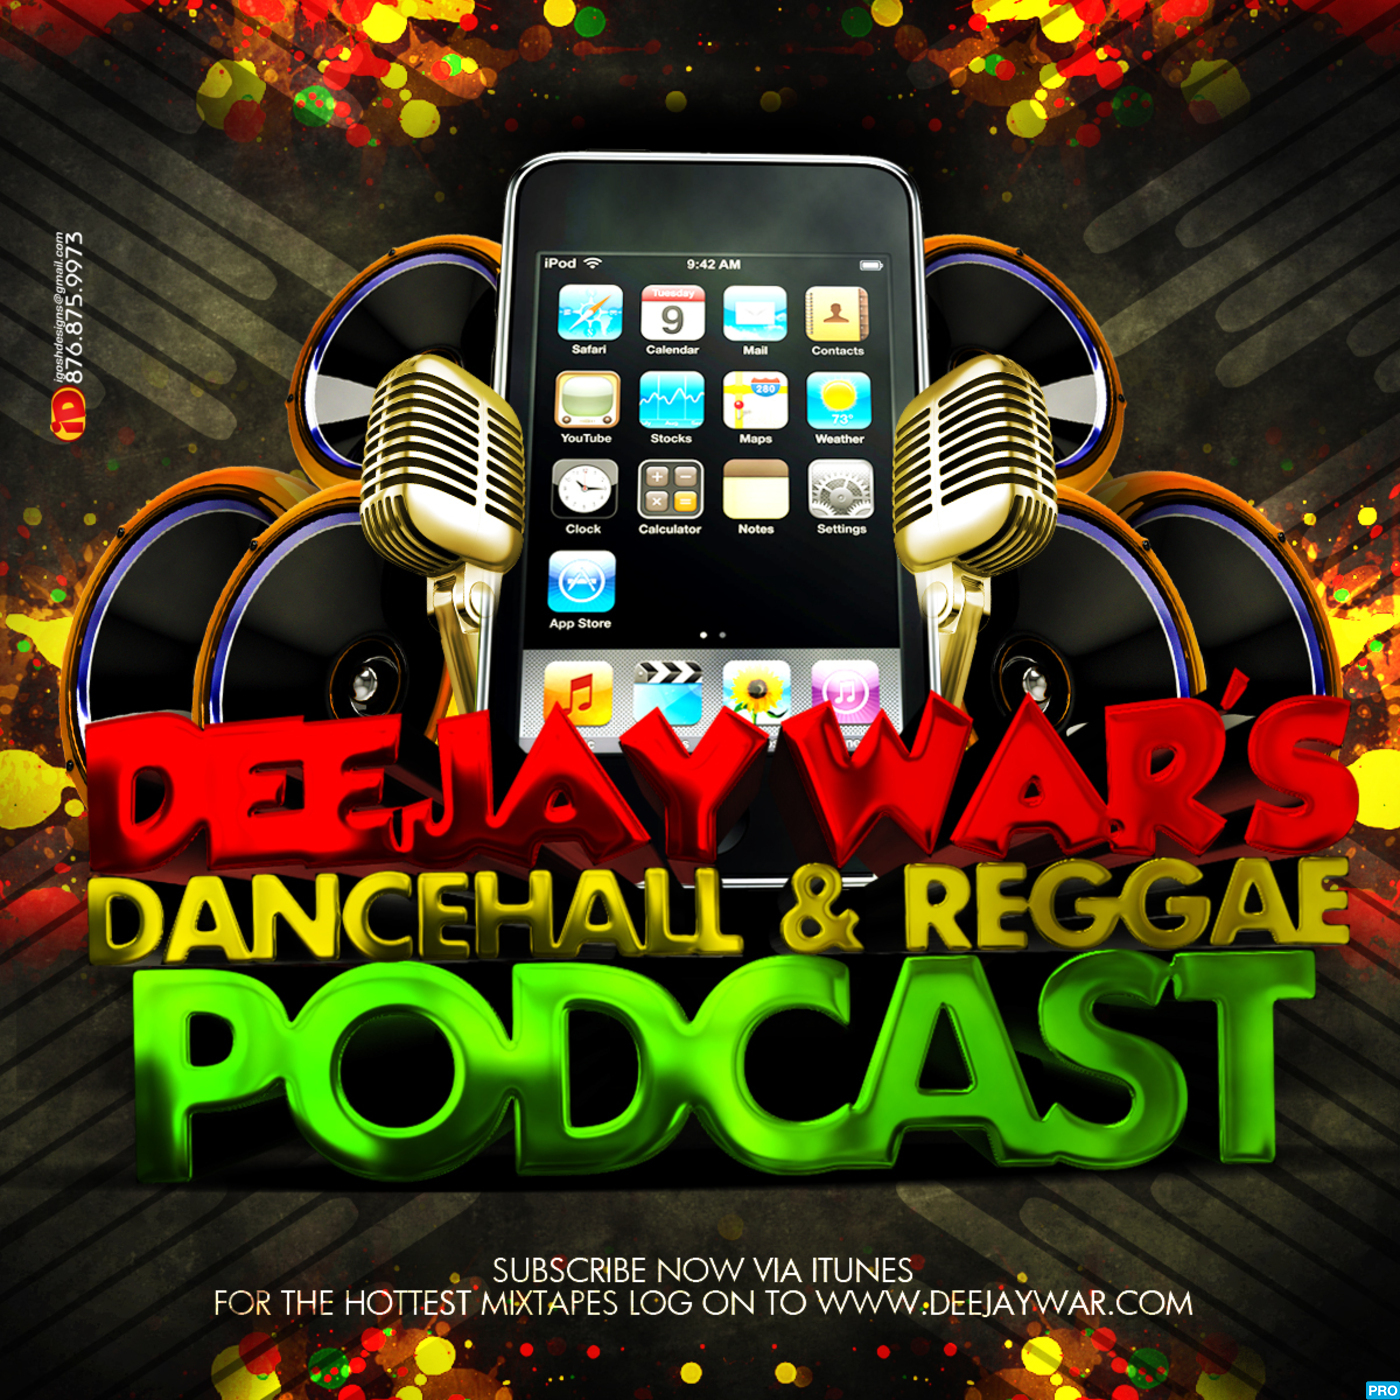 DJ War's Mixtapes & Podcasts